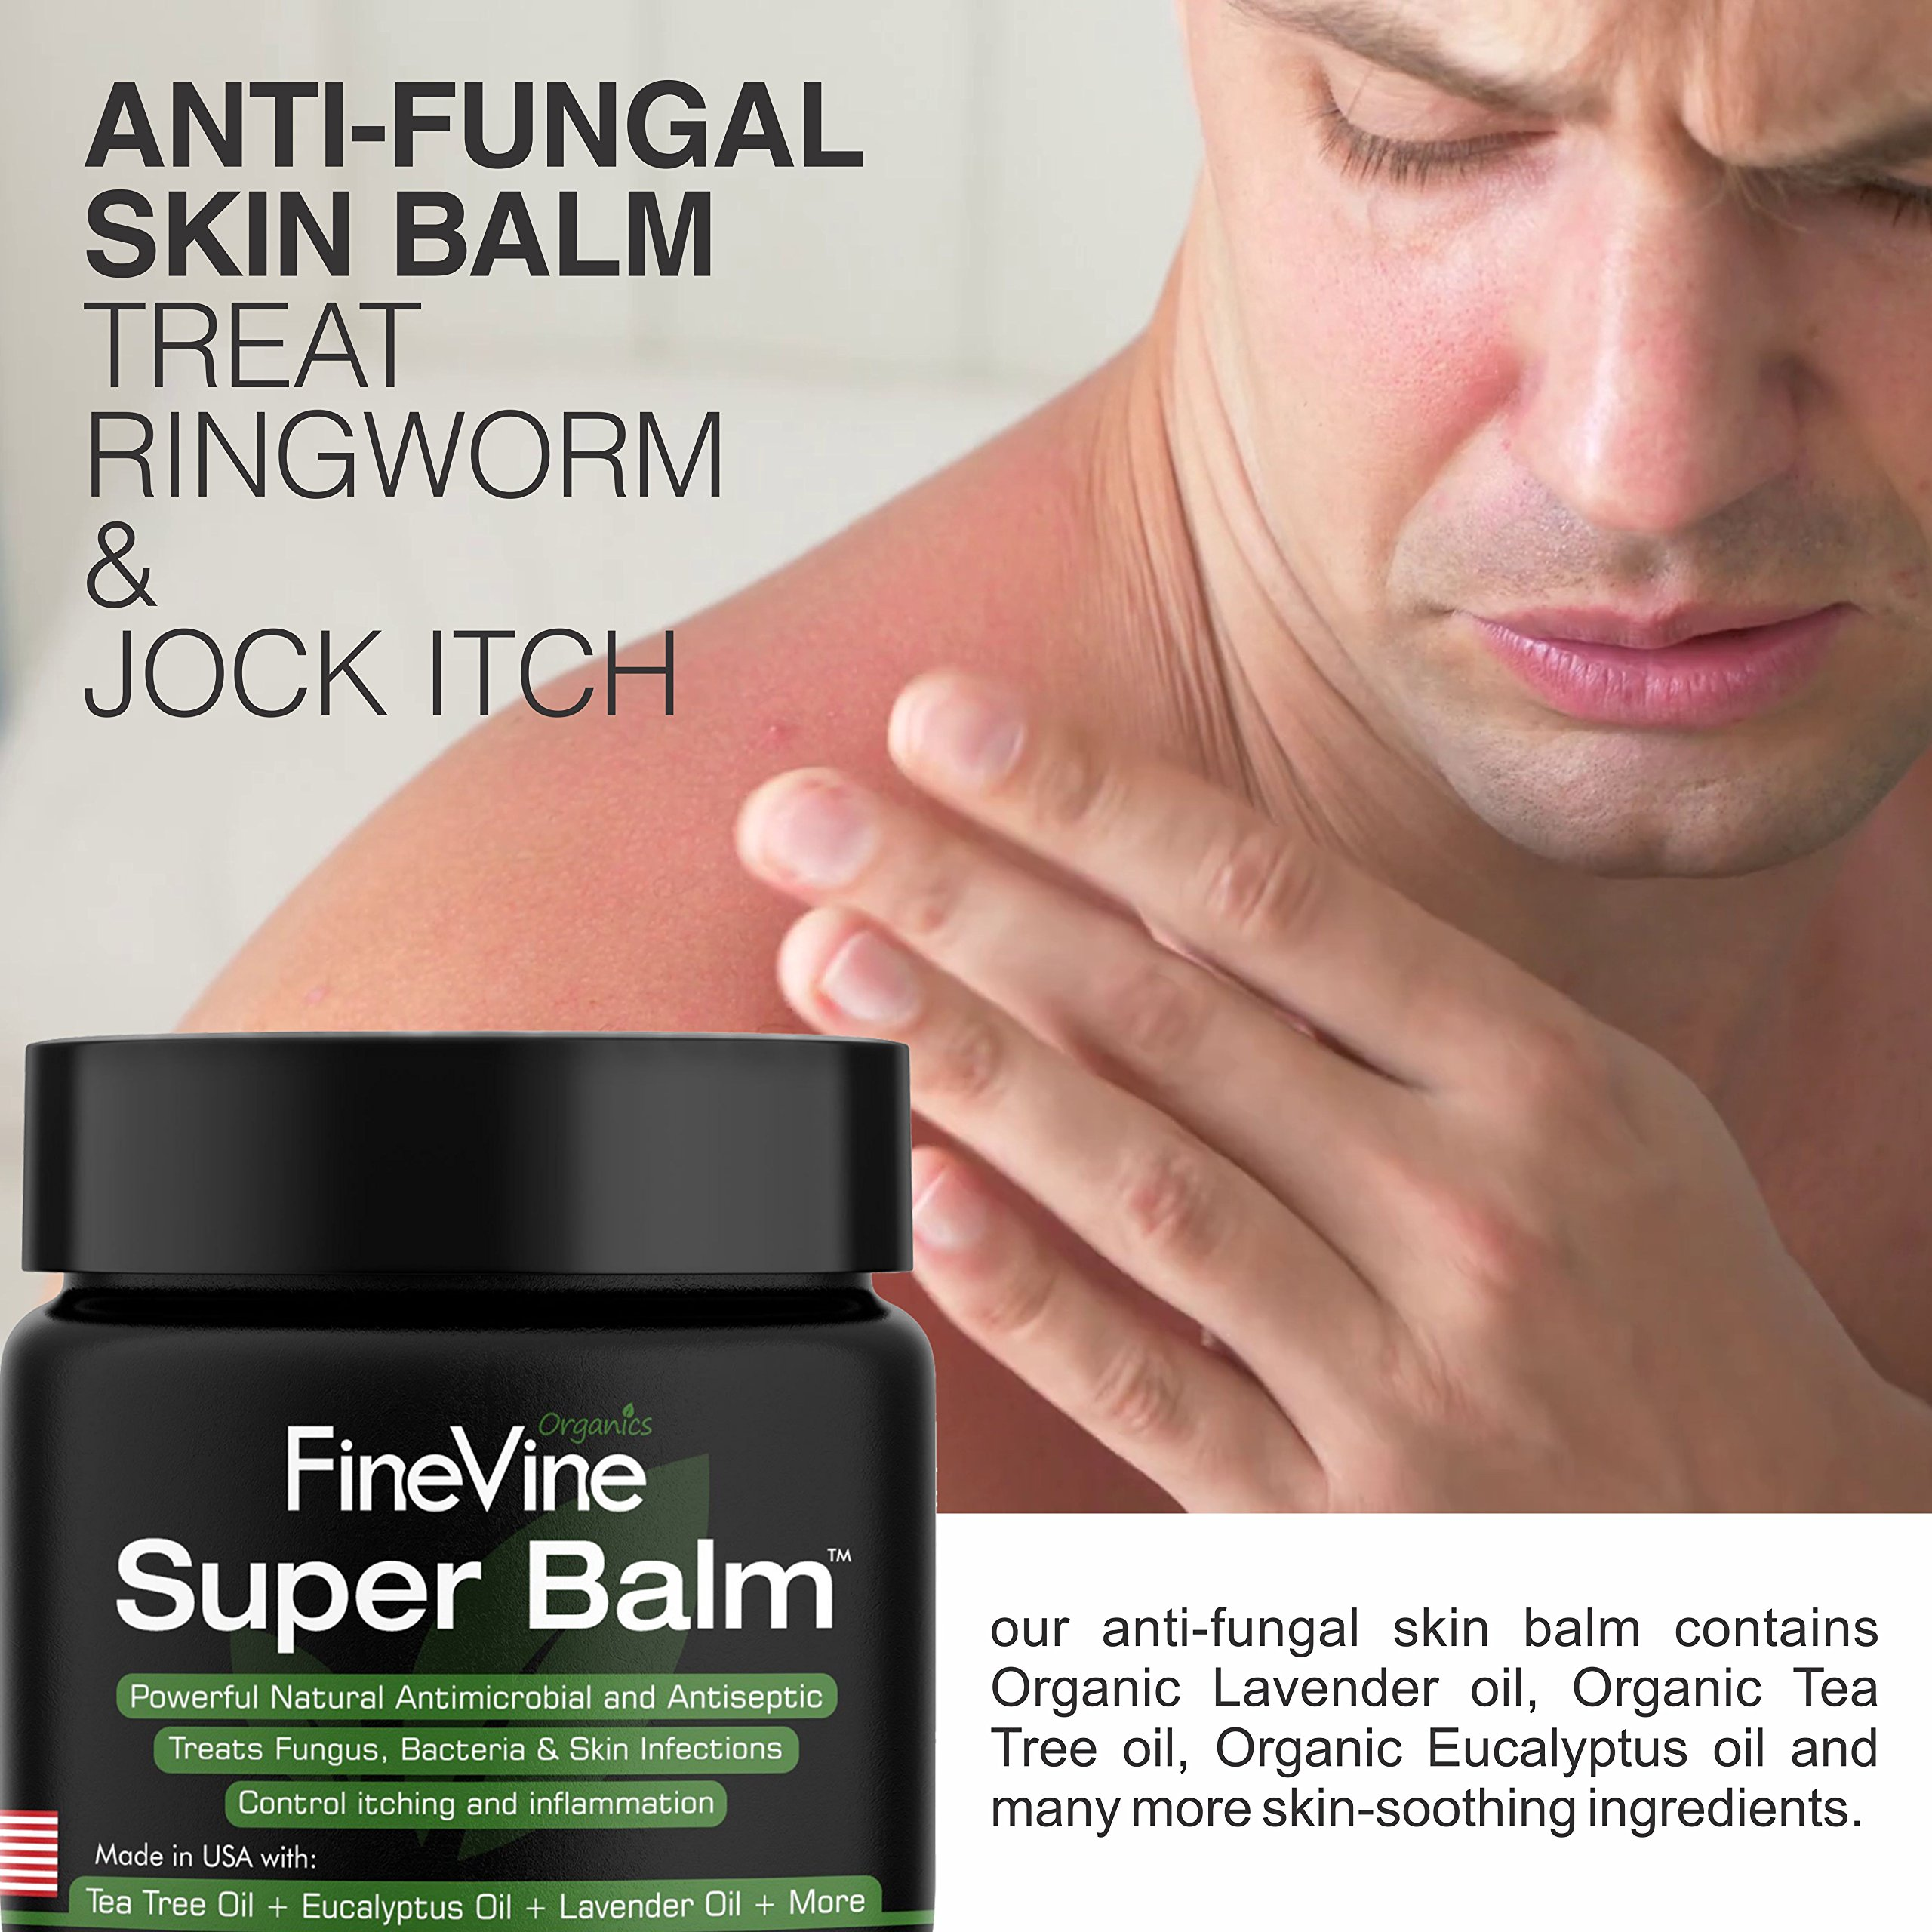 Antifungal Balm - Made in USA - Helps Treat Eczema, Ringworm, Jock Itch, Athletes Foot and Nail Fungal Infections - Best Natural Ointment to Soothes Itchy, Scaly or Cracked Skin. by FineVine (Image #2)